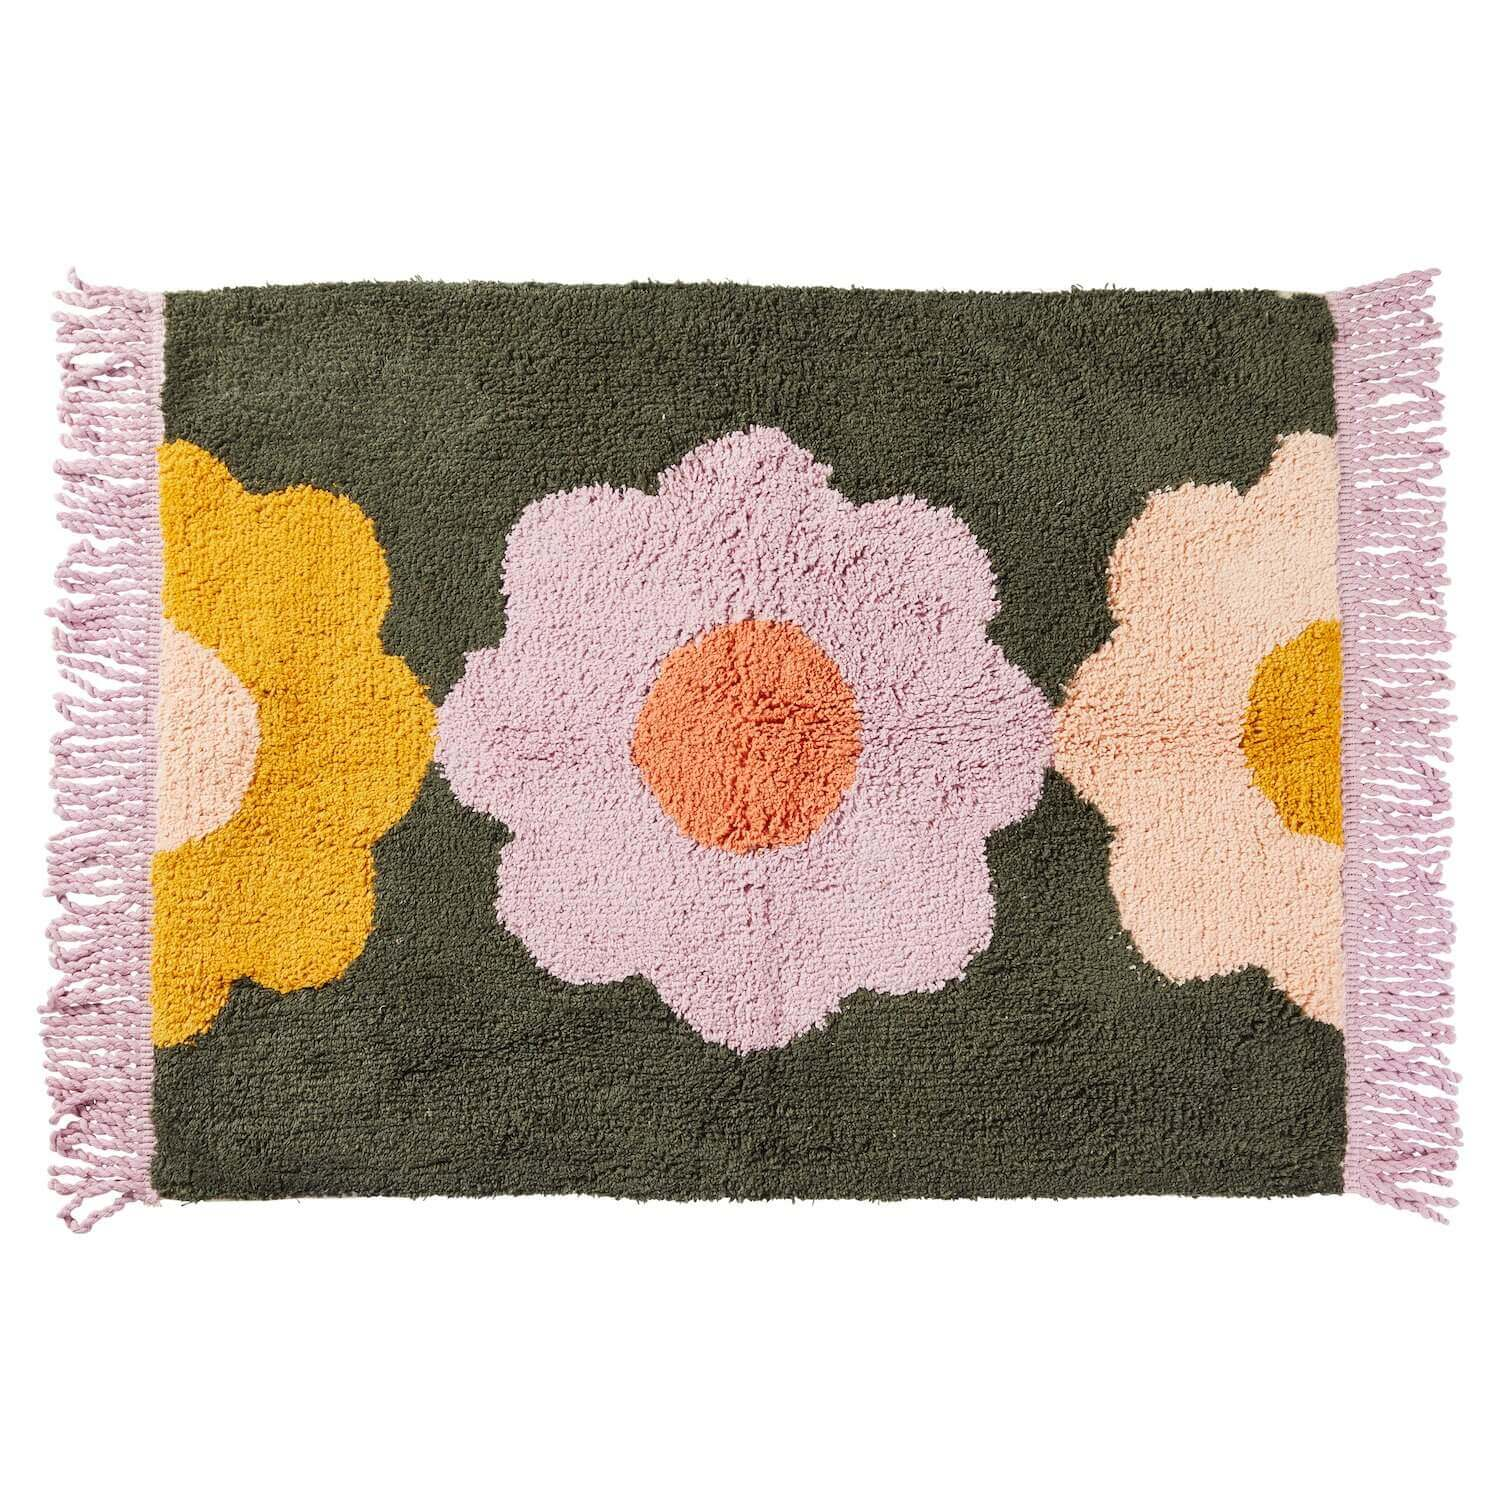 Sage and Clare bath mat Helene Flower Cotton Fringing |The Home Maven